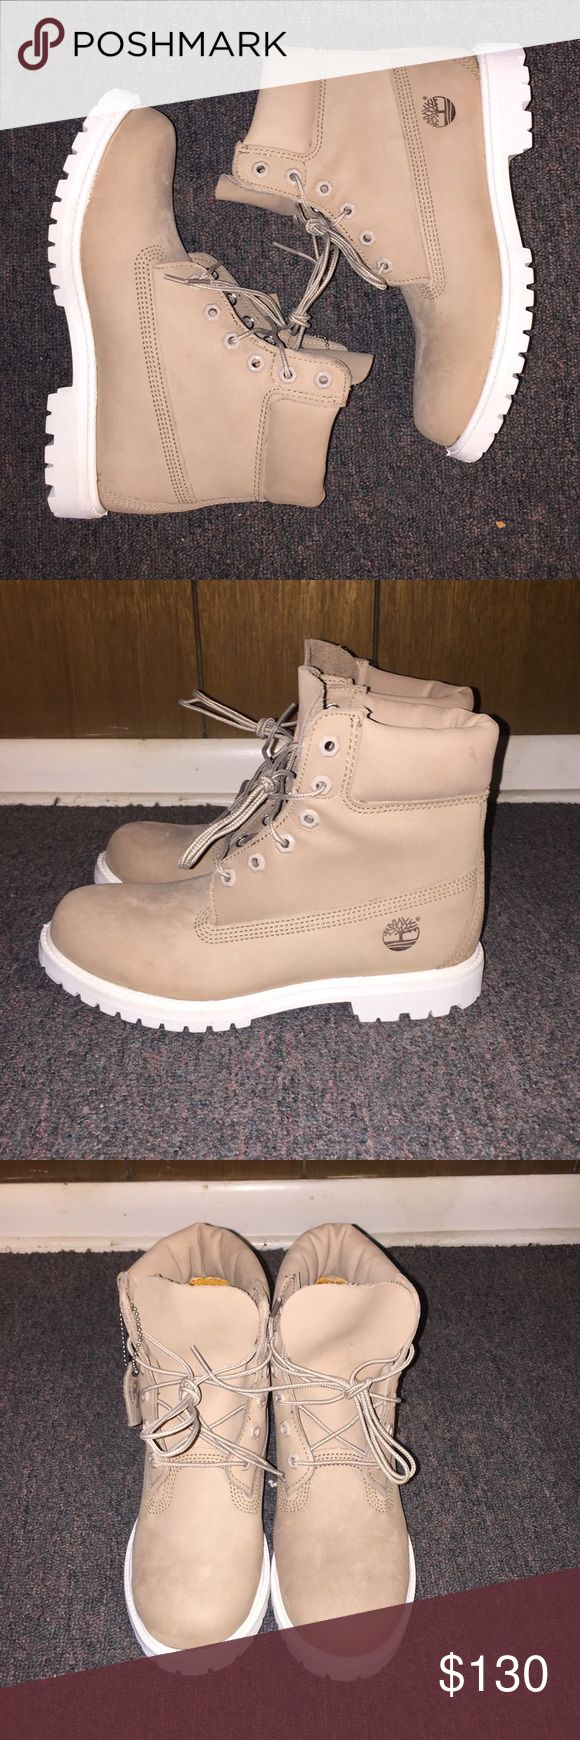 Tan Timberlands Timberland Boots  Brand New  Never Worn  Tan w/ White Bottom  Bundle 4 Better Pricing   Use Offer Button To Negotiate Timberland Shoes Lace Up Boots